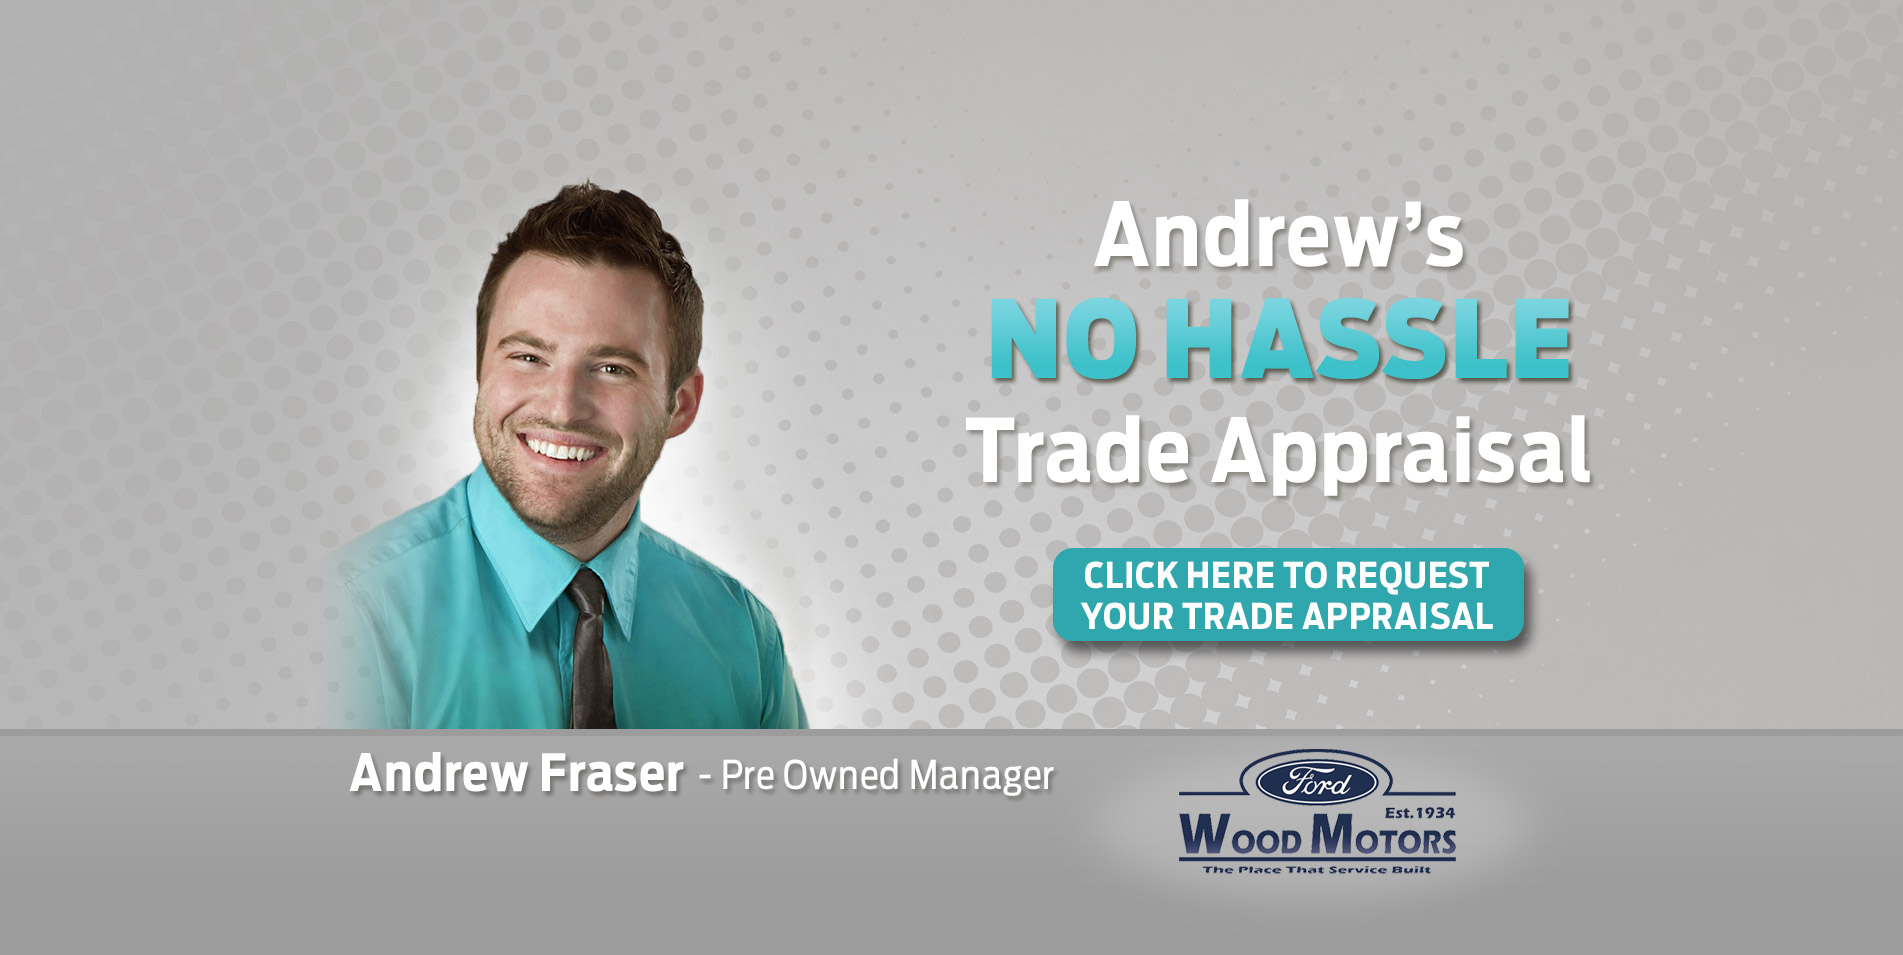 Wood Motors Ford Pre Owned Vehicles